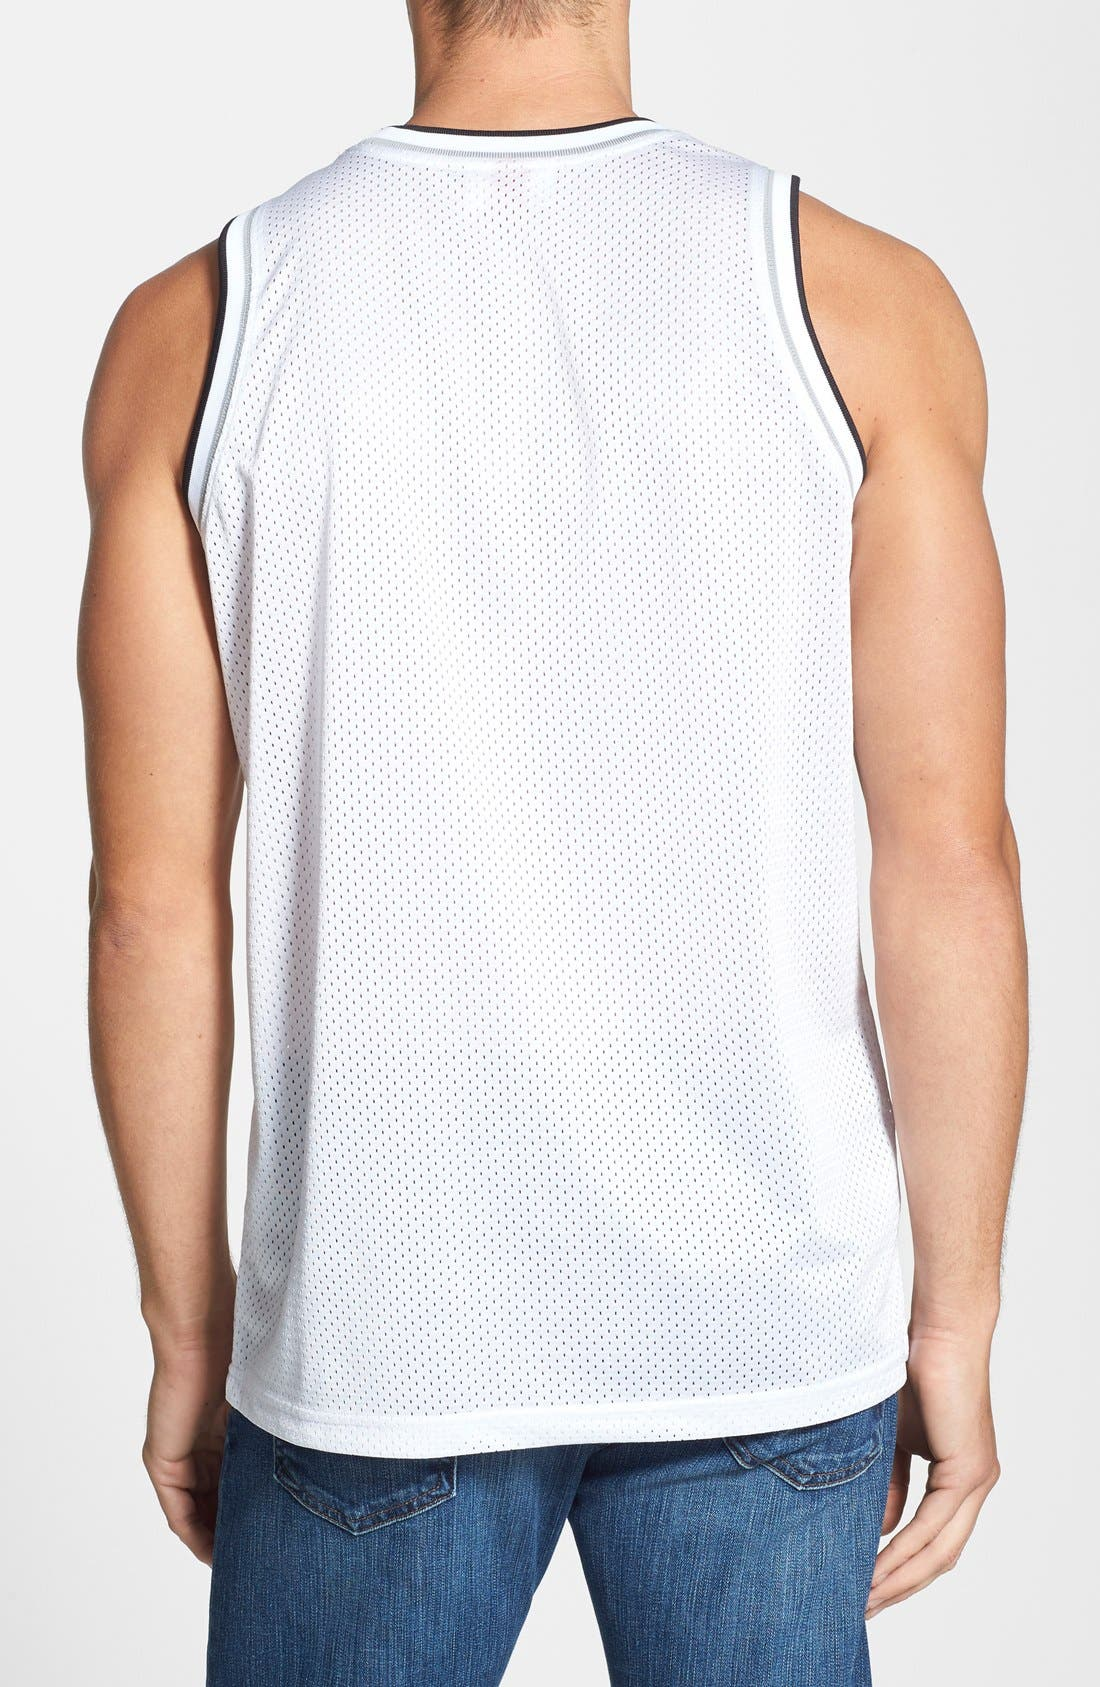 Alternate Image 2  - Mitchell & Ness 'Brooklyn Nets' Mesh Tank Top Jersey